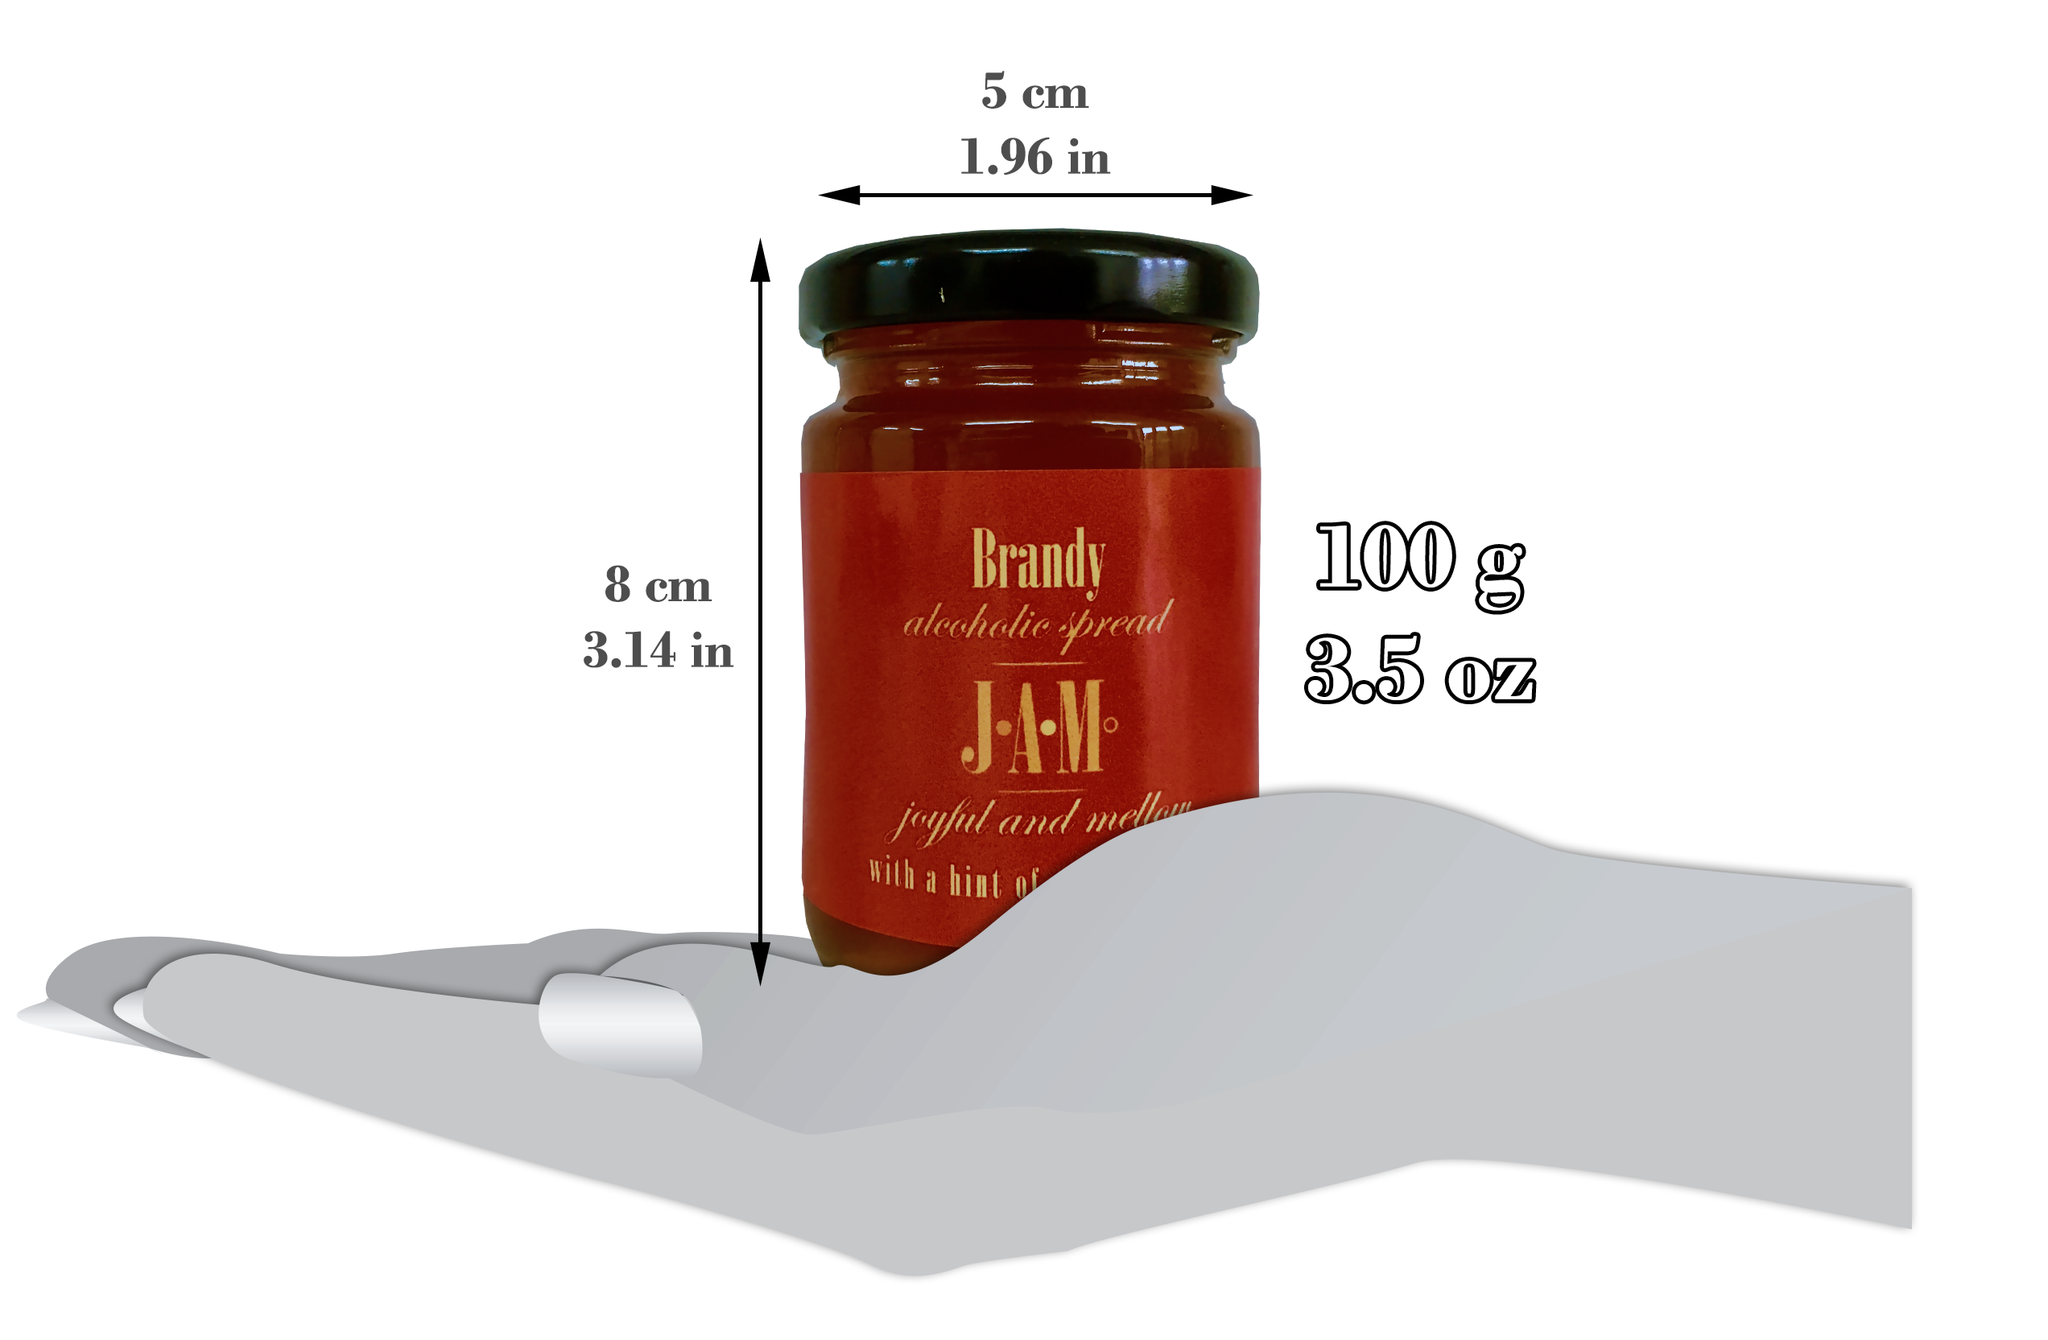 Brandy with a Hint of Passion Fruit Alcoholic Spread (100g)